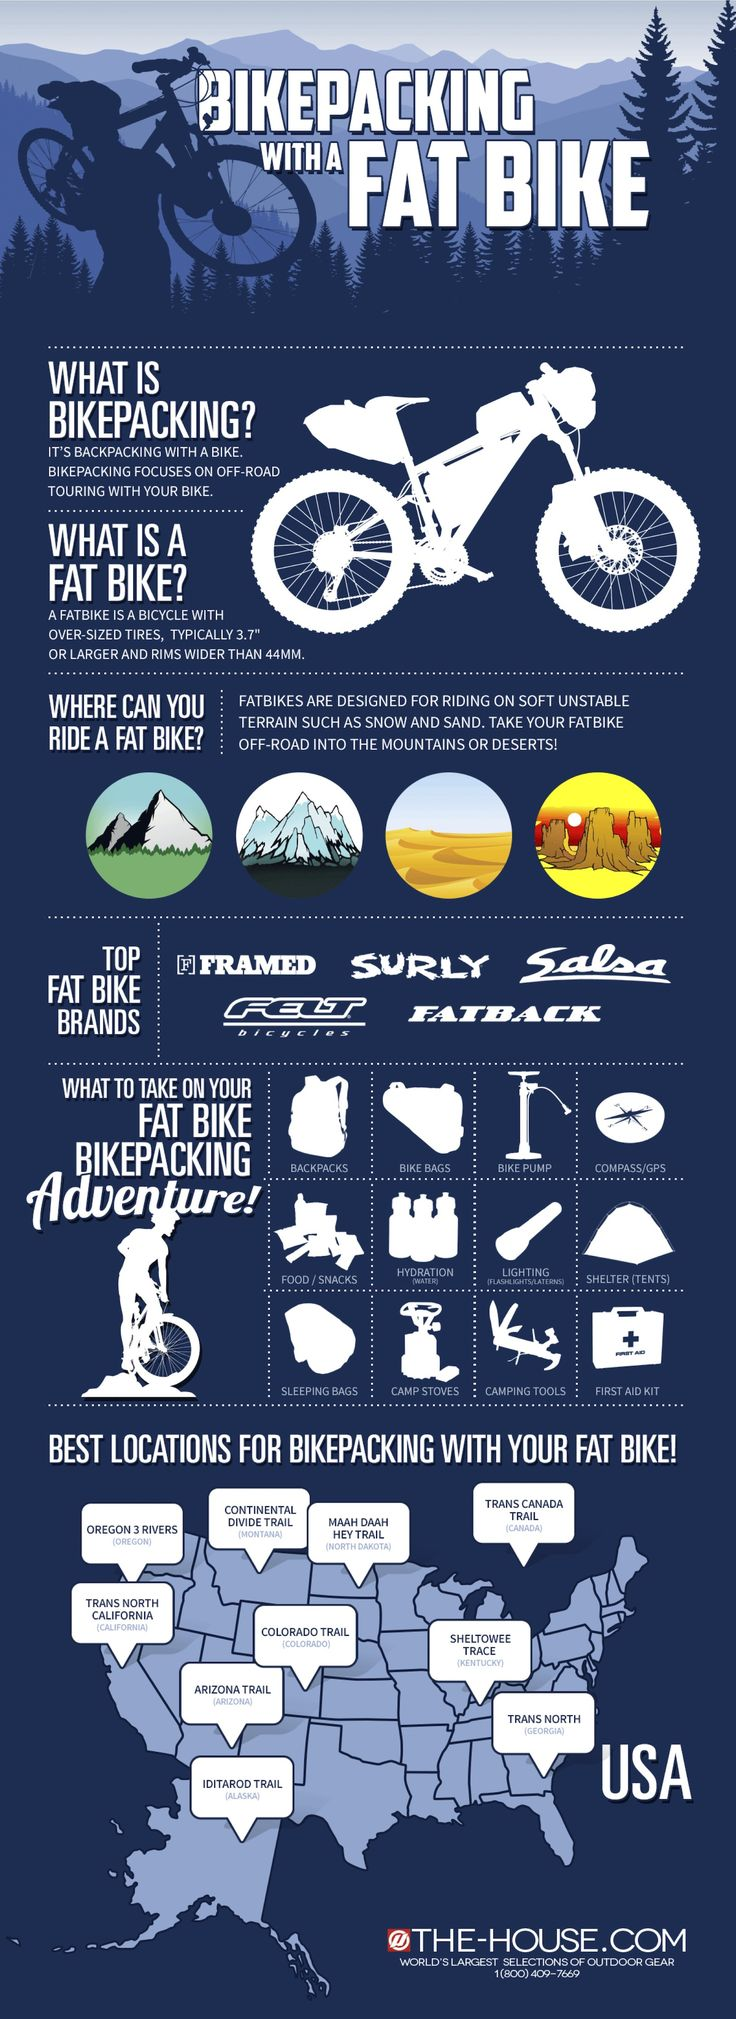 Mountain Bike vs Fat Bike. What's a difference?